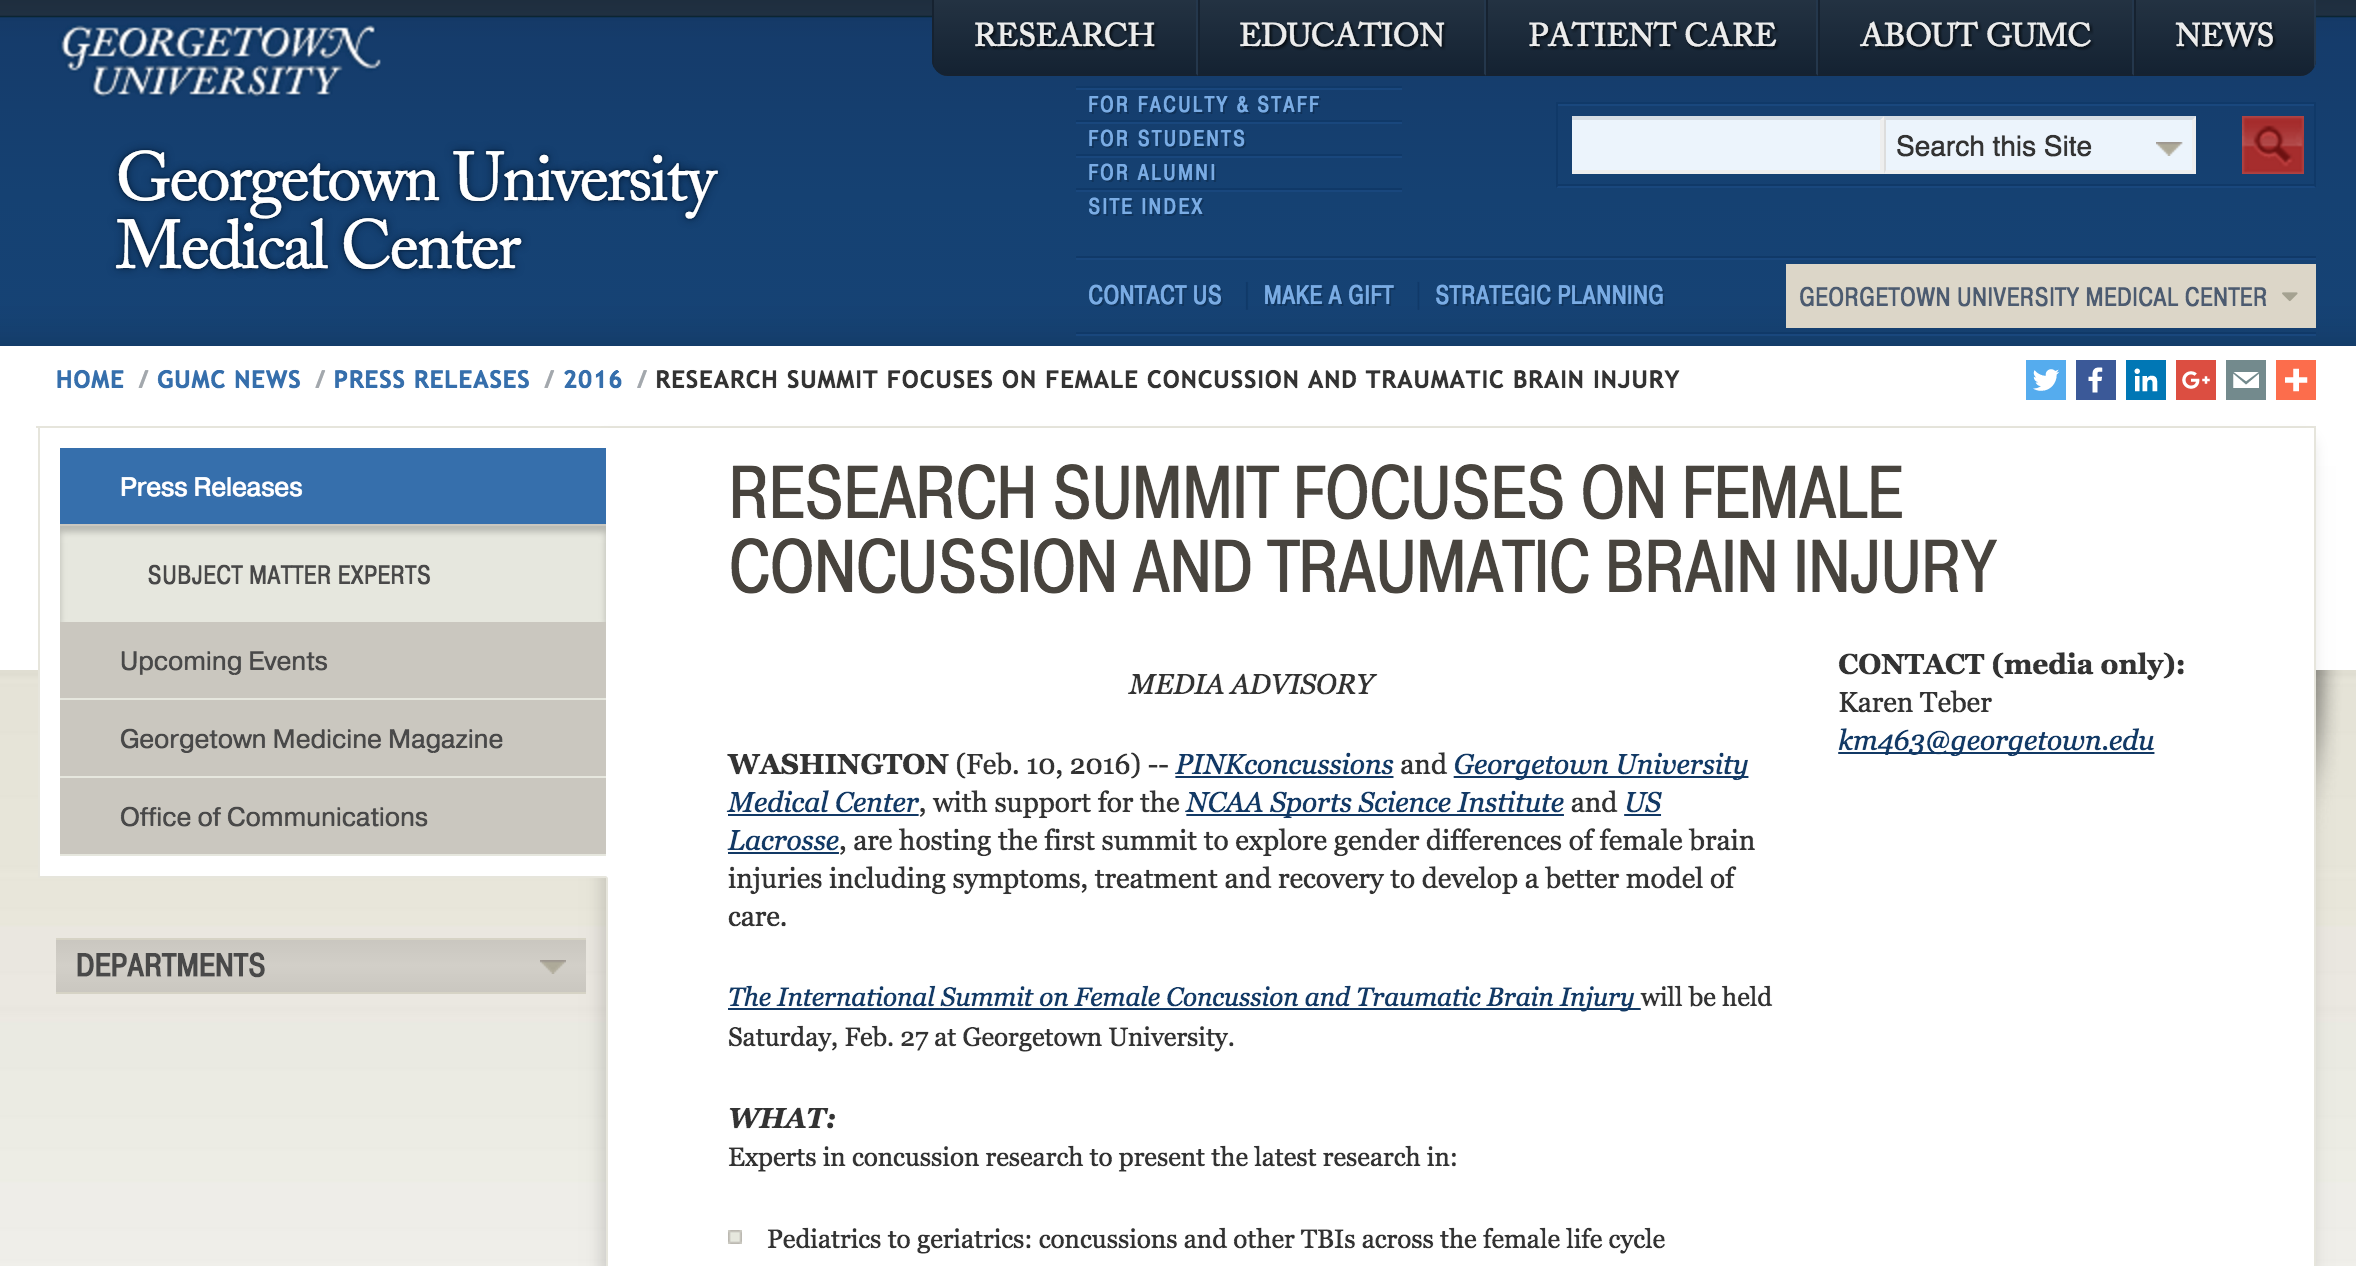 Dr. Harry Kerasidis to Present Latest Findings at NCAA, Georgetown University First-Time Summit on Female Concussions